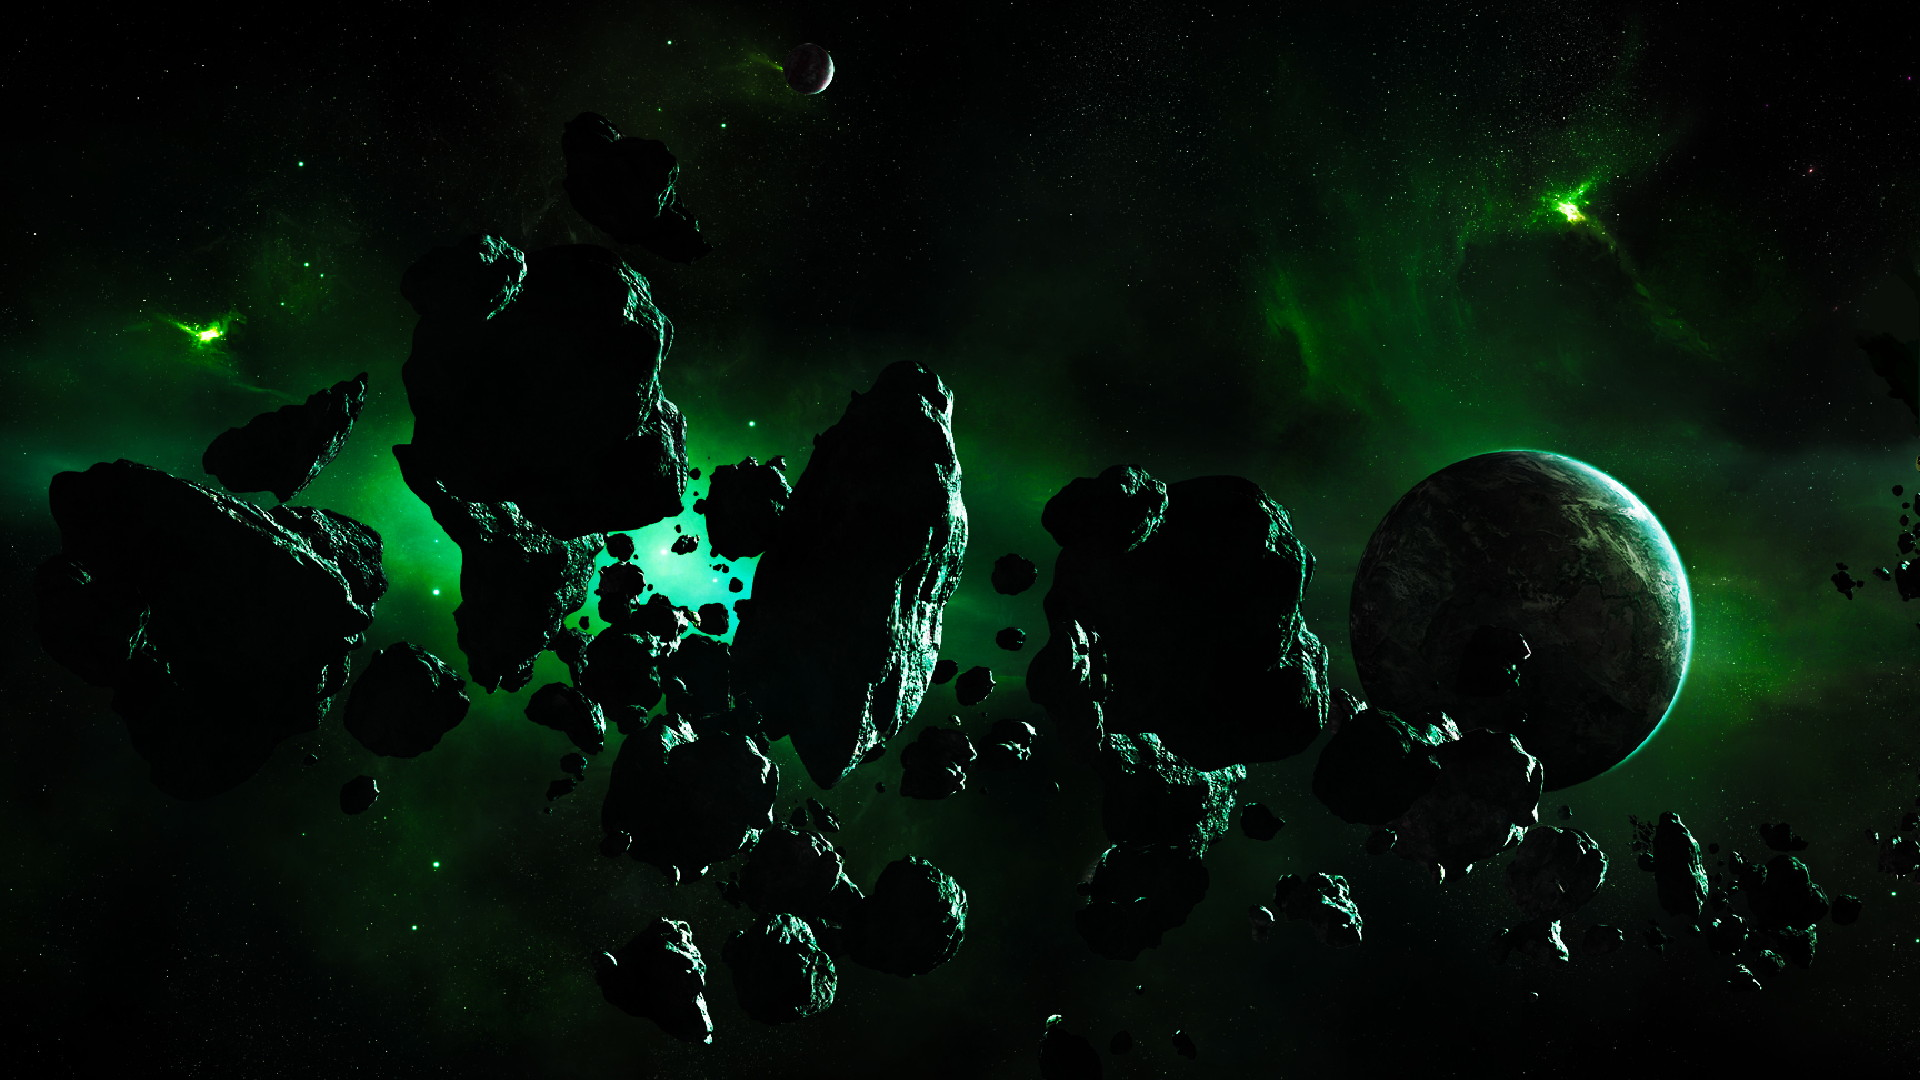 1920x1080 - Asteroid Wallpapers 25